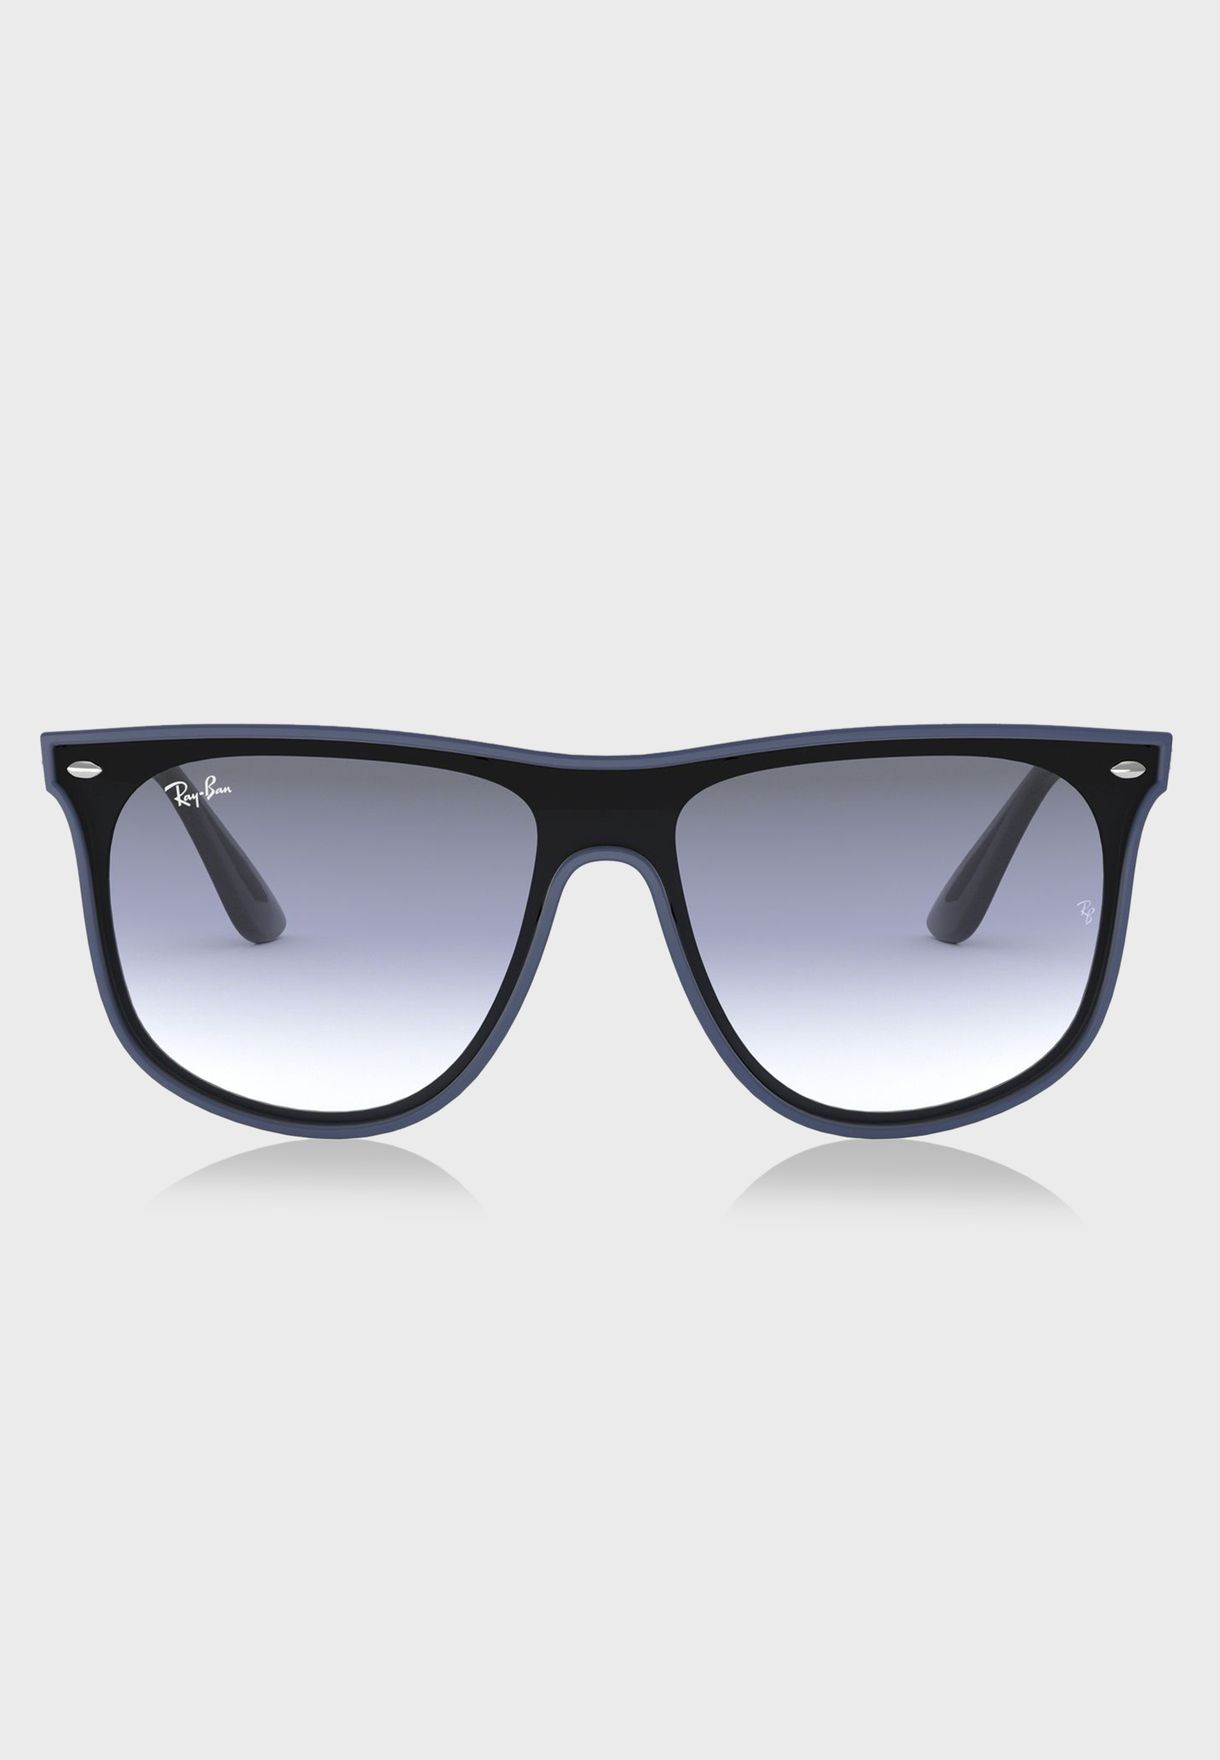 0RB4447N Wayfarer Sunglasses